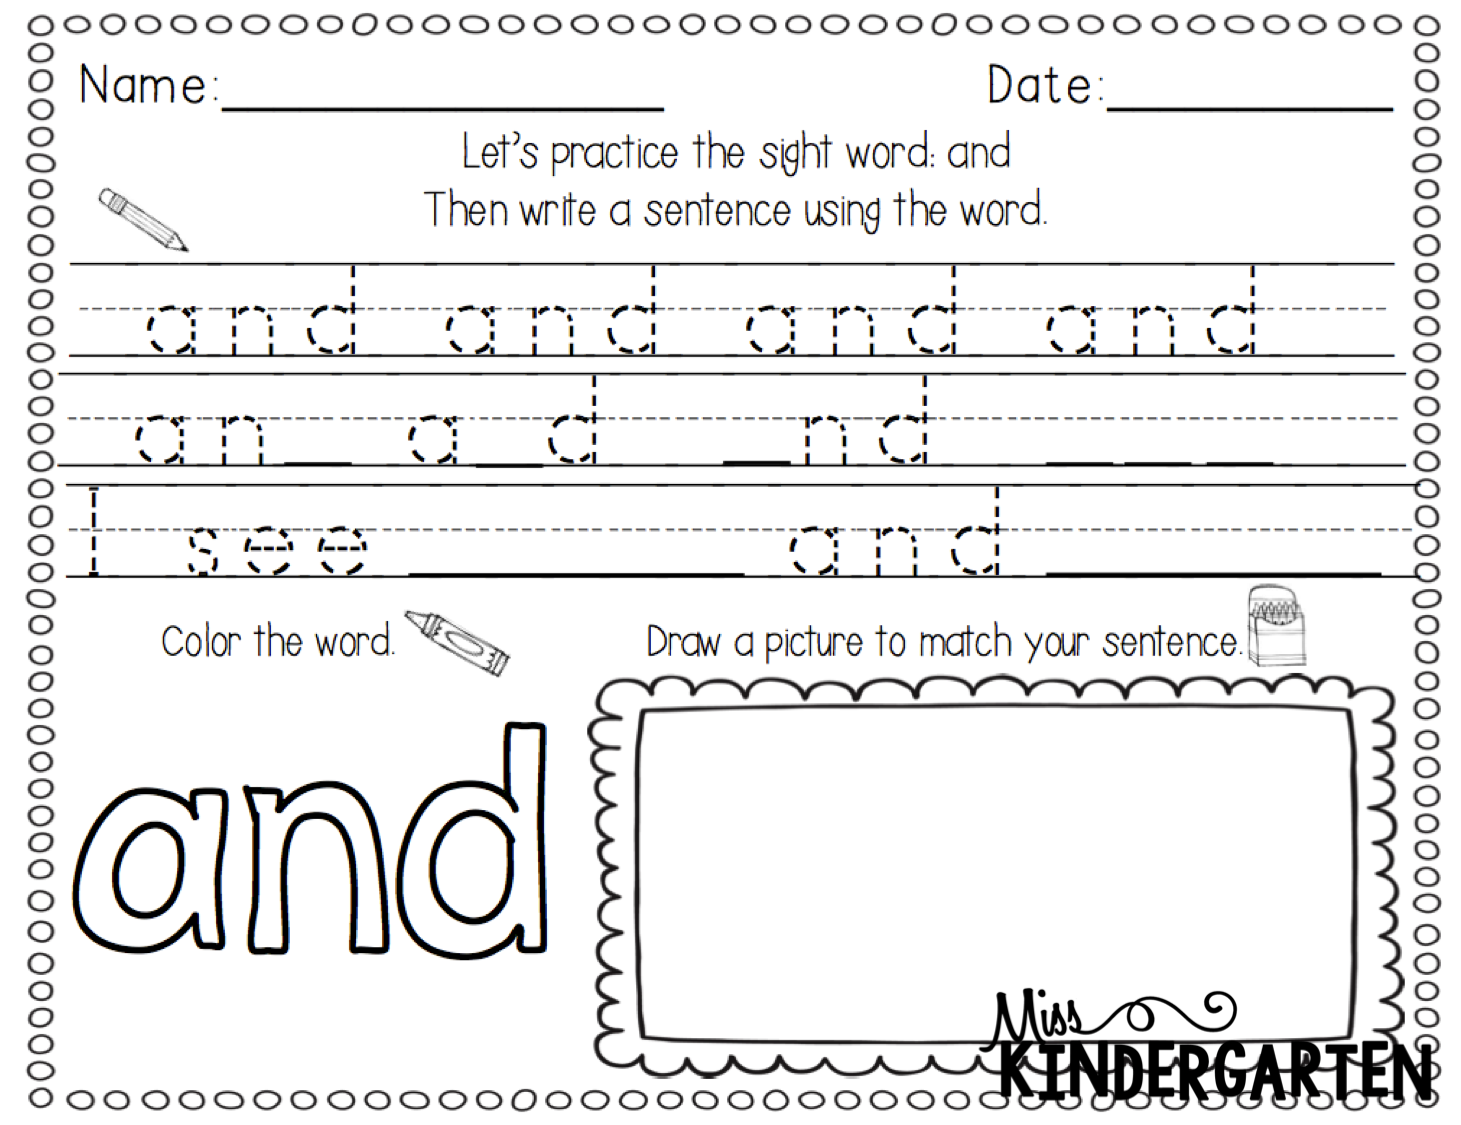 Worksheet Sight Words For Kindergarteners more sight words miss kindergarten you can check out my word writing activities by clicking on the images below